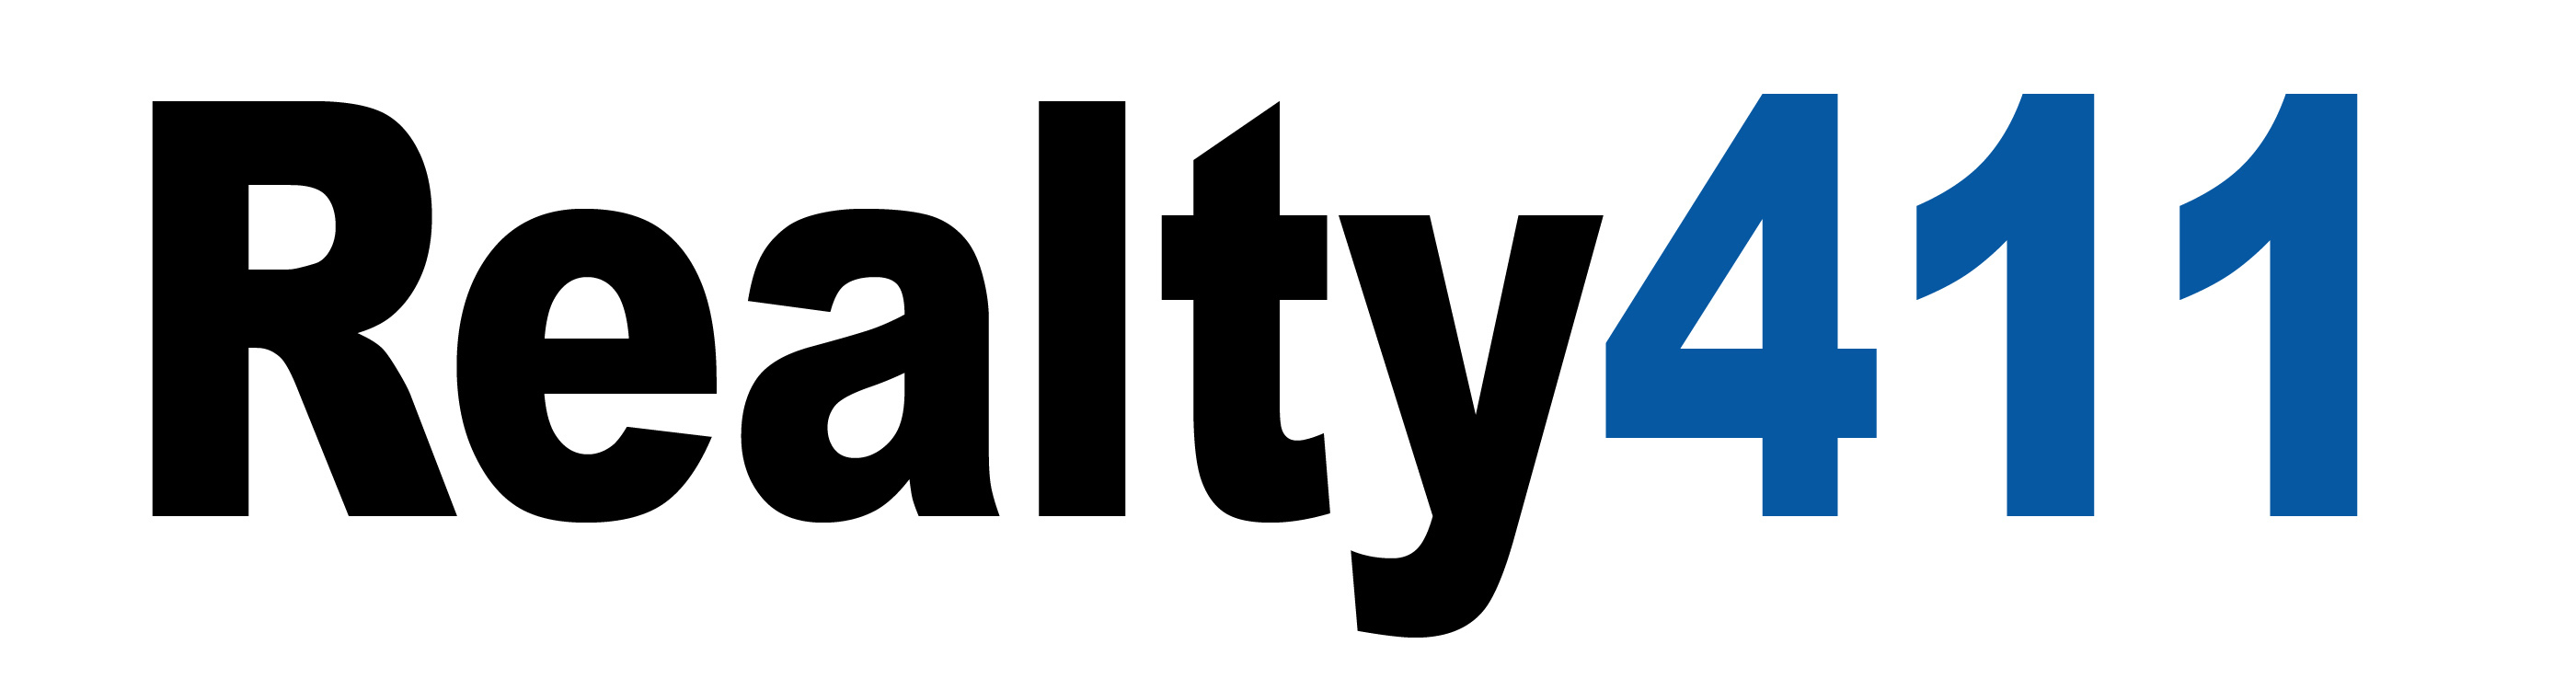 Realty411 blue and black logo